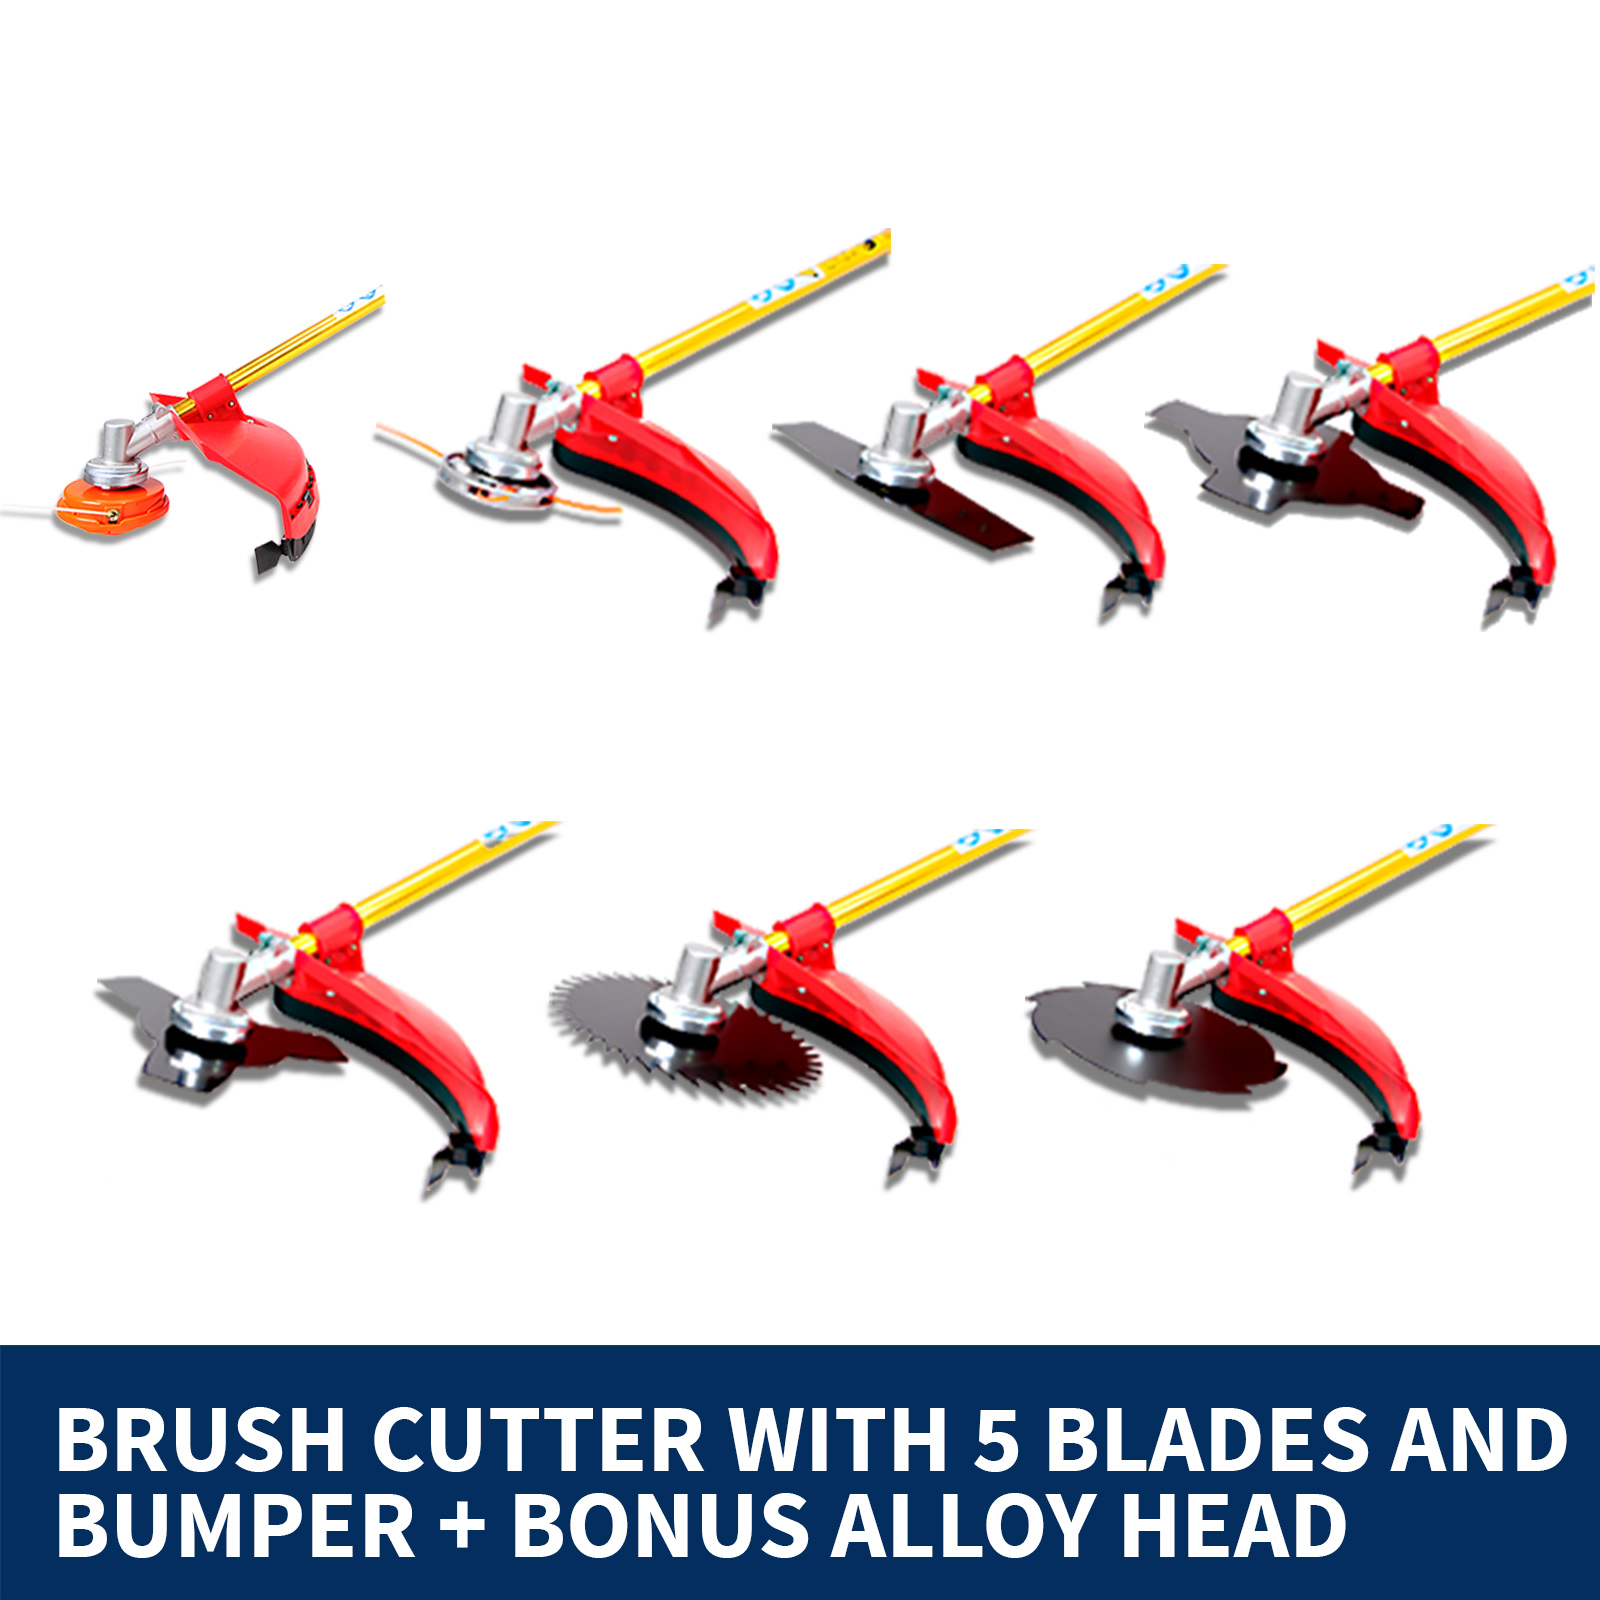 BlackEagle 52cc Petrol Brush Cutter Whipper Snipper Weed Line Trimmer Backpack